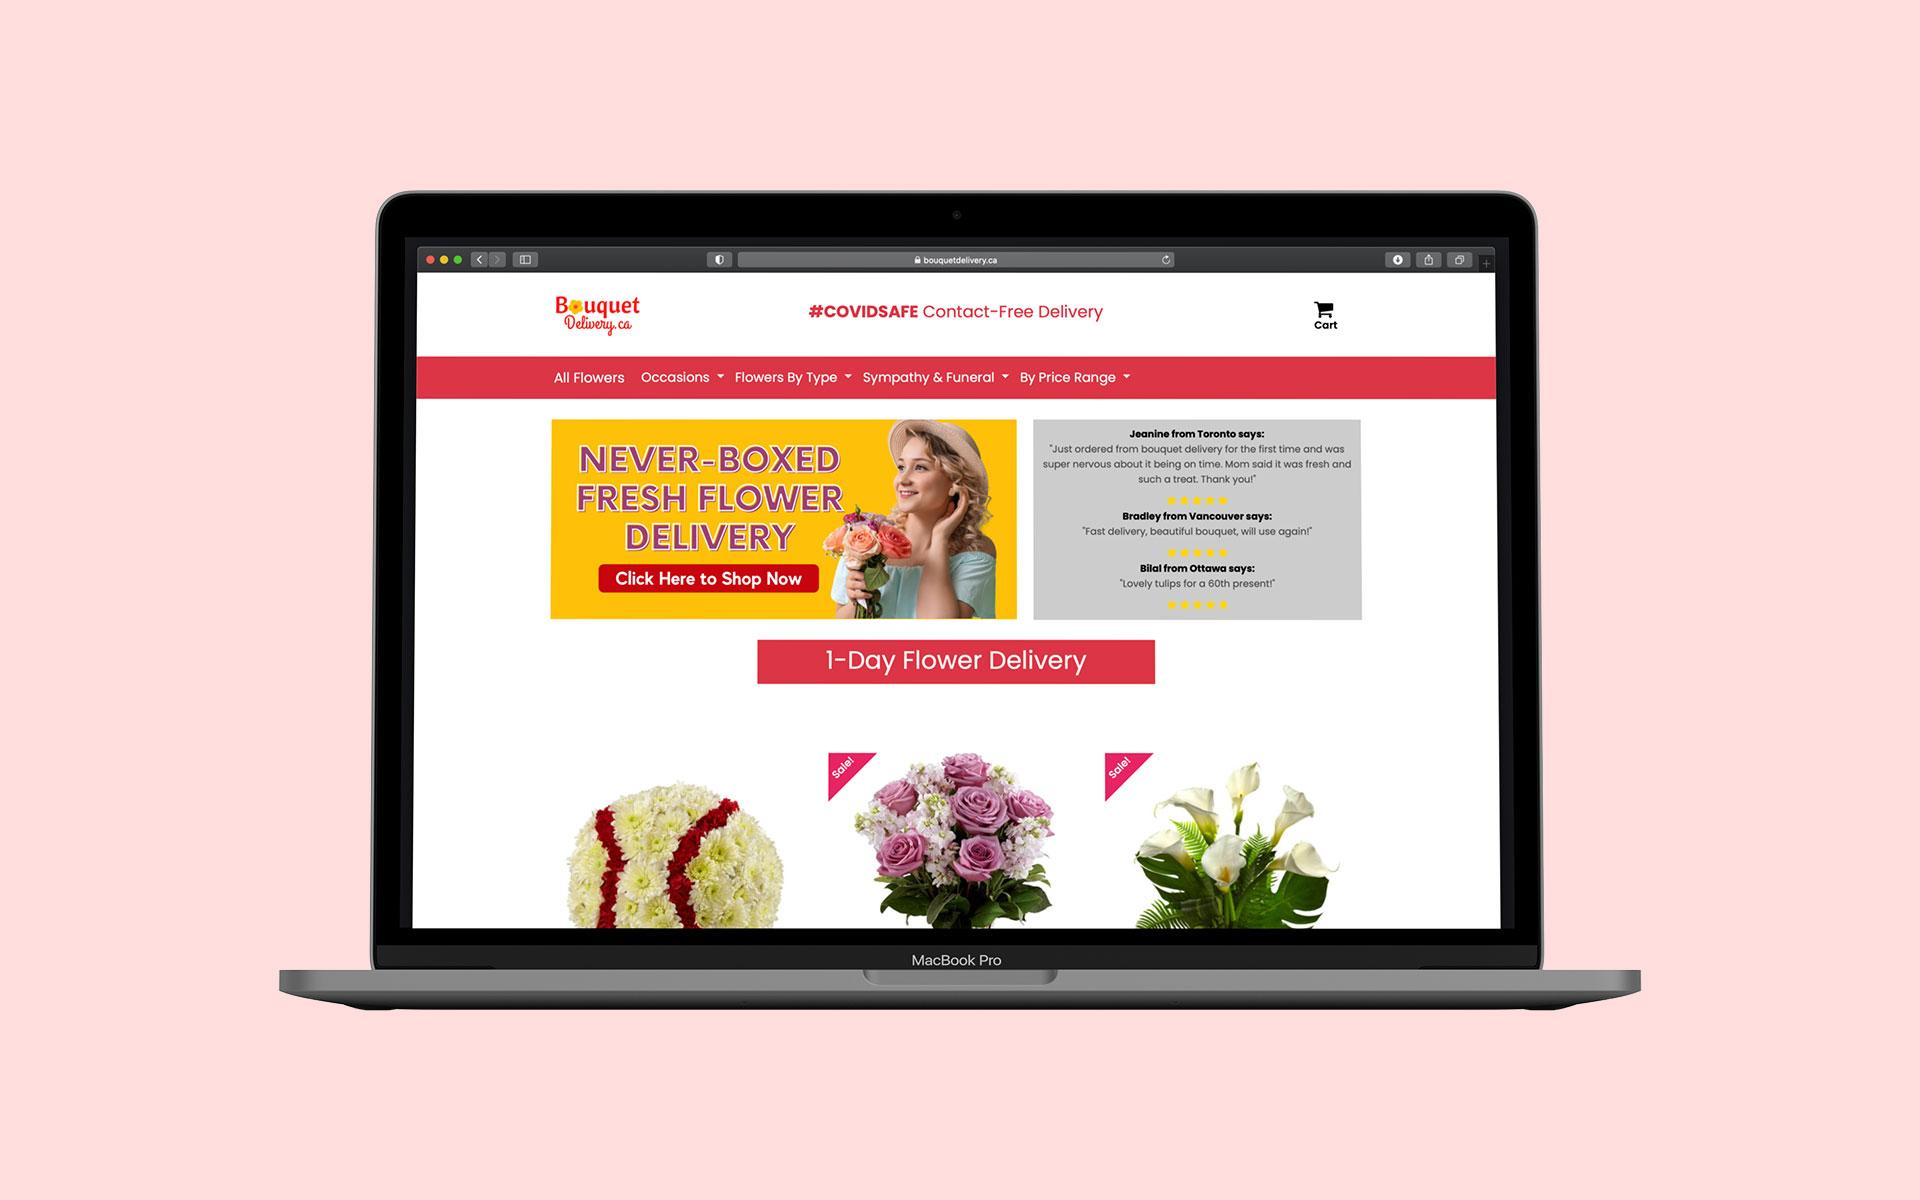 Bouquet Delivery Canada